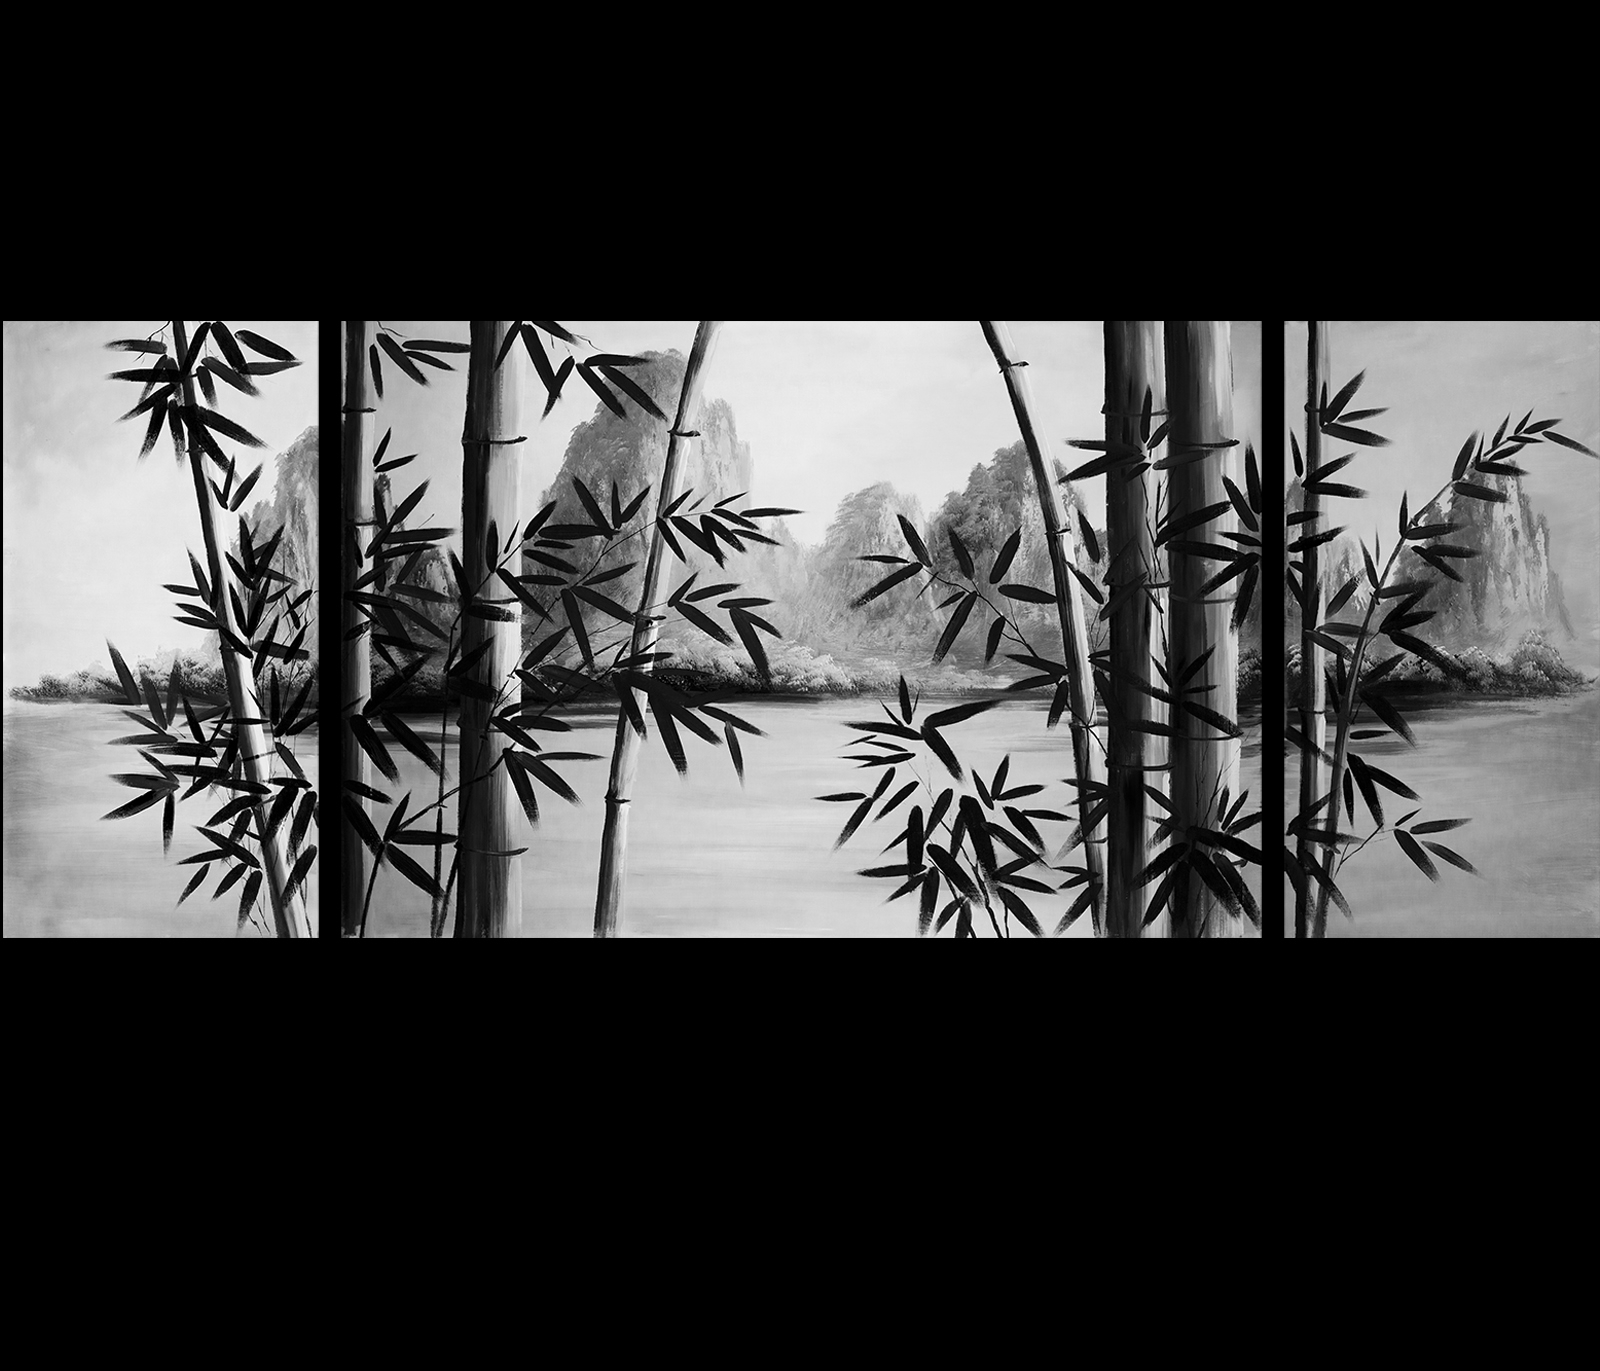 Bamboo Painting, Bamboo Paintings | Bamboo Paintings | Pinterest Pertaining To Most Recent Black And White Photography Canvas Wall Art (View 6 of 15)